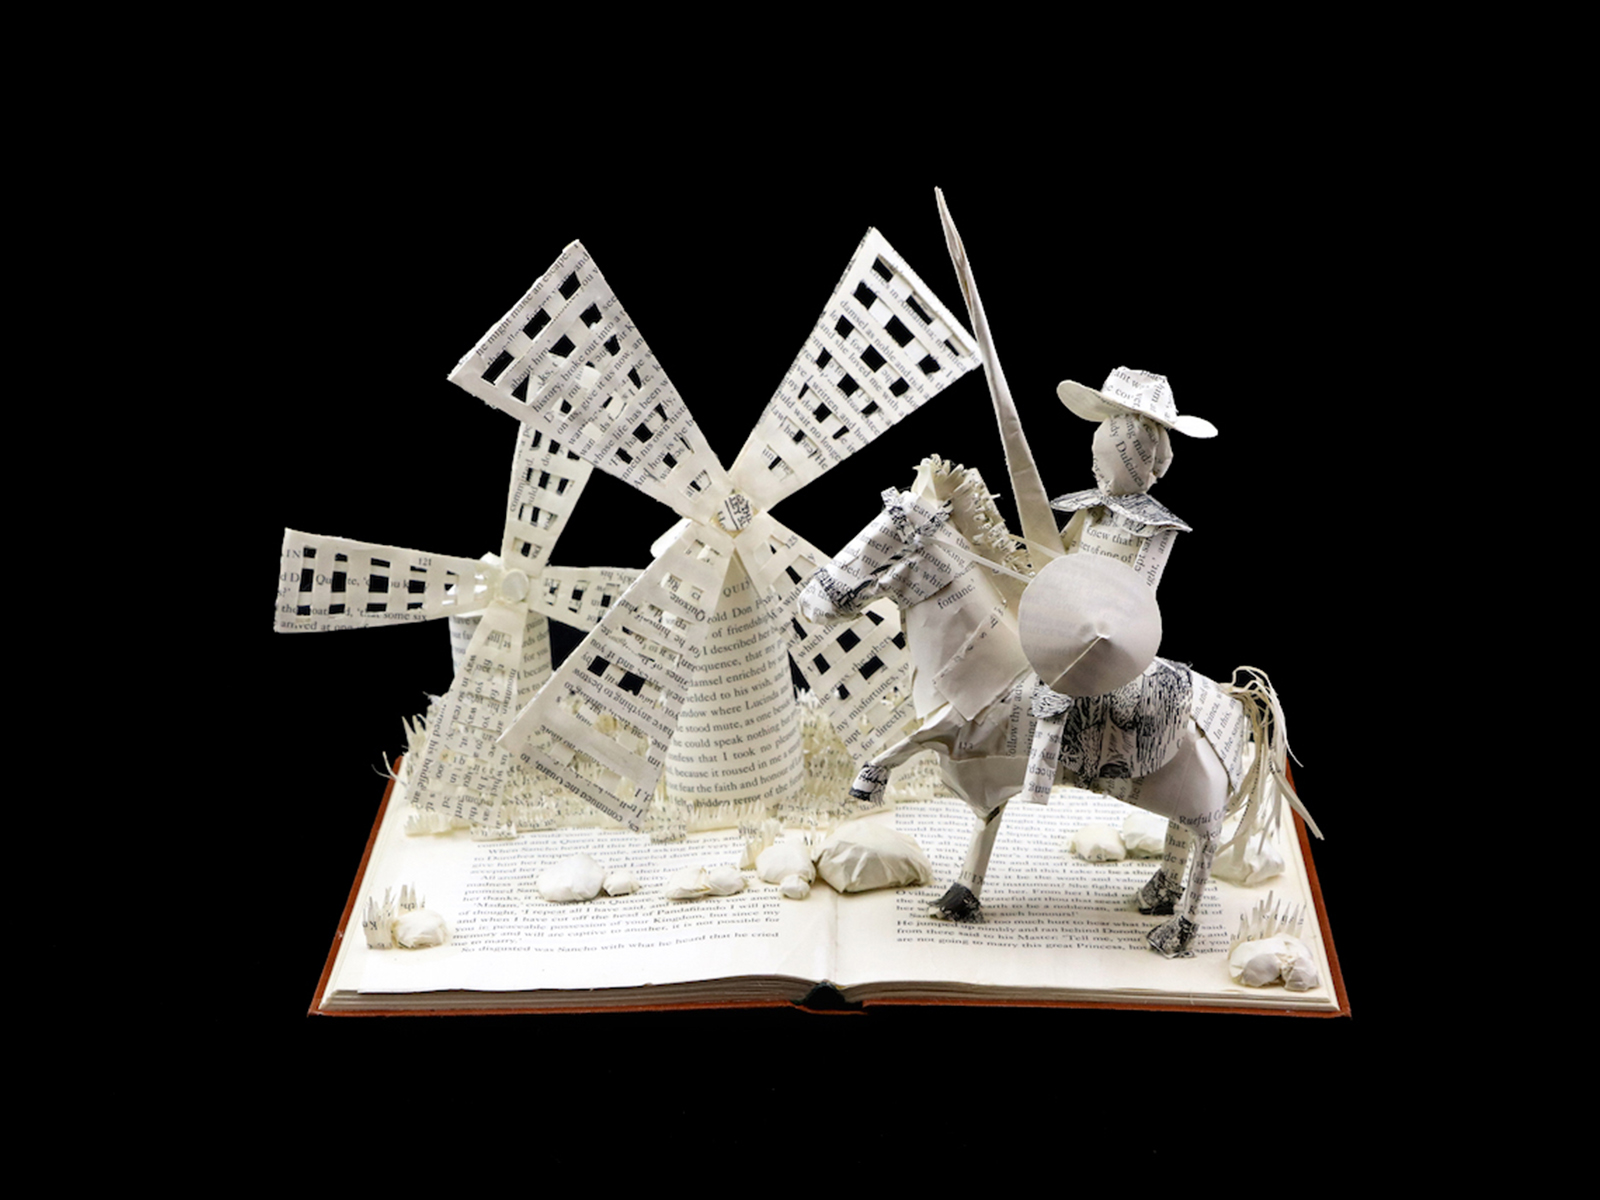 Custom Book Sculpture by Jamie B. Hannigan - Don Quixote of the Mancha